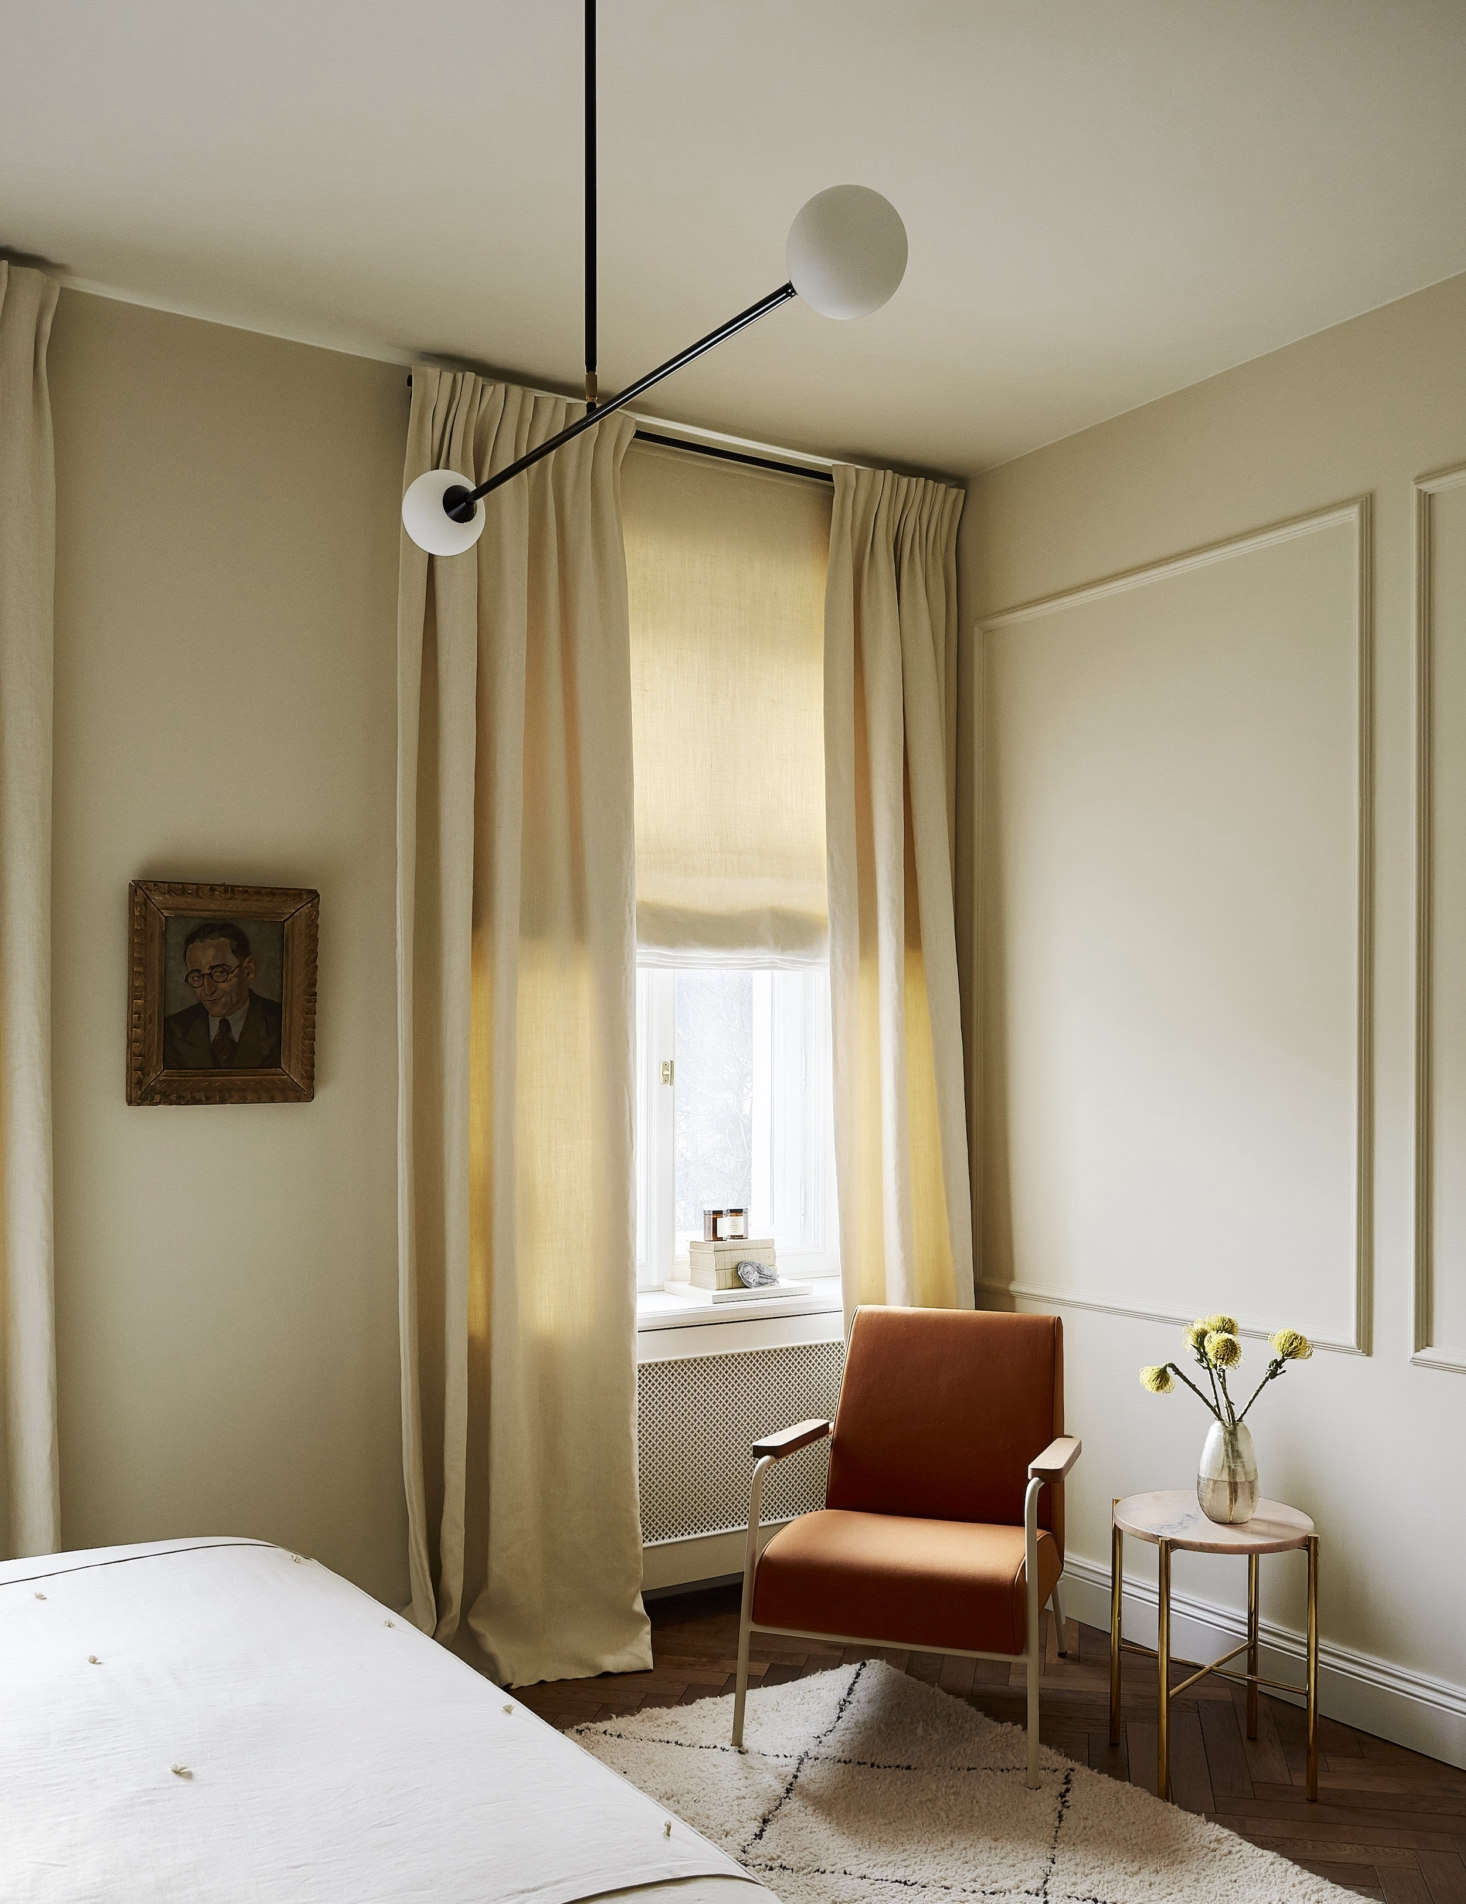 The Two Spheres pendant light from Atelier Areti hovers over the room, which is painted Alabaster, by Emente.